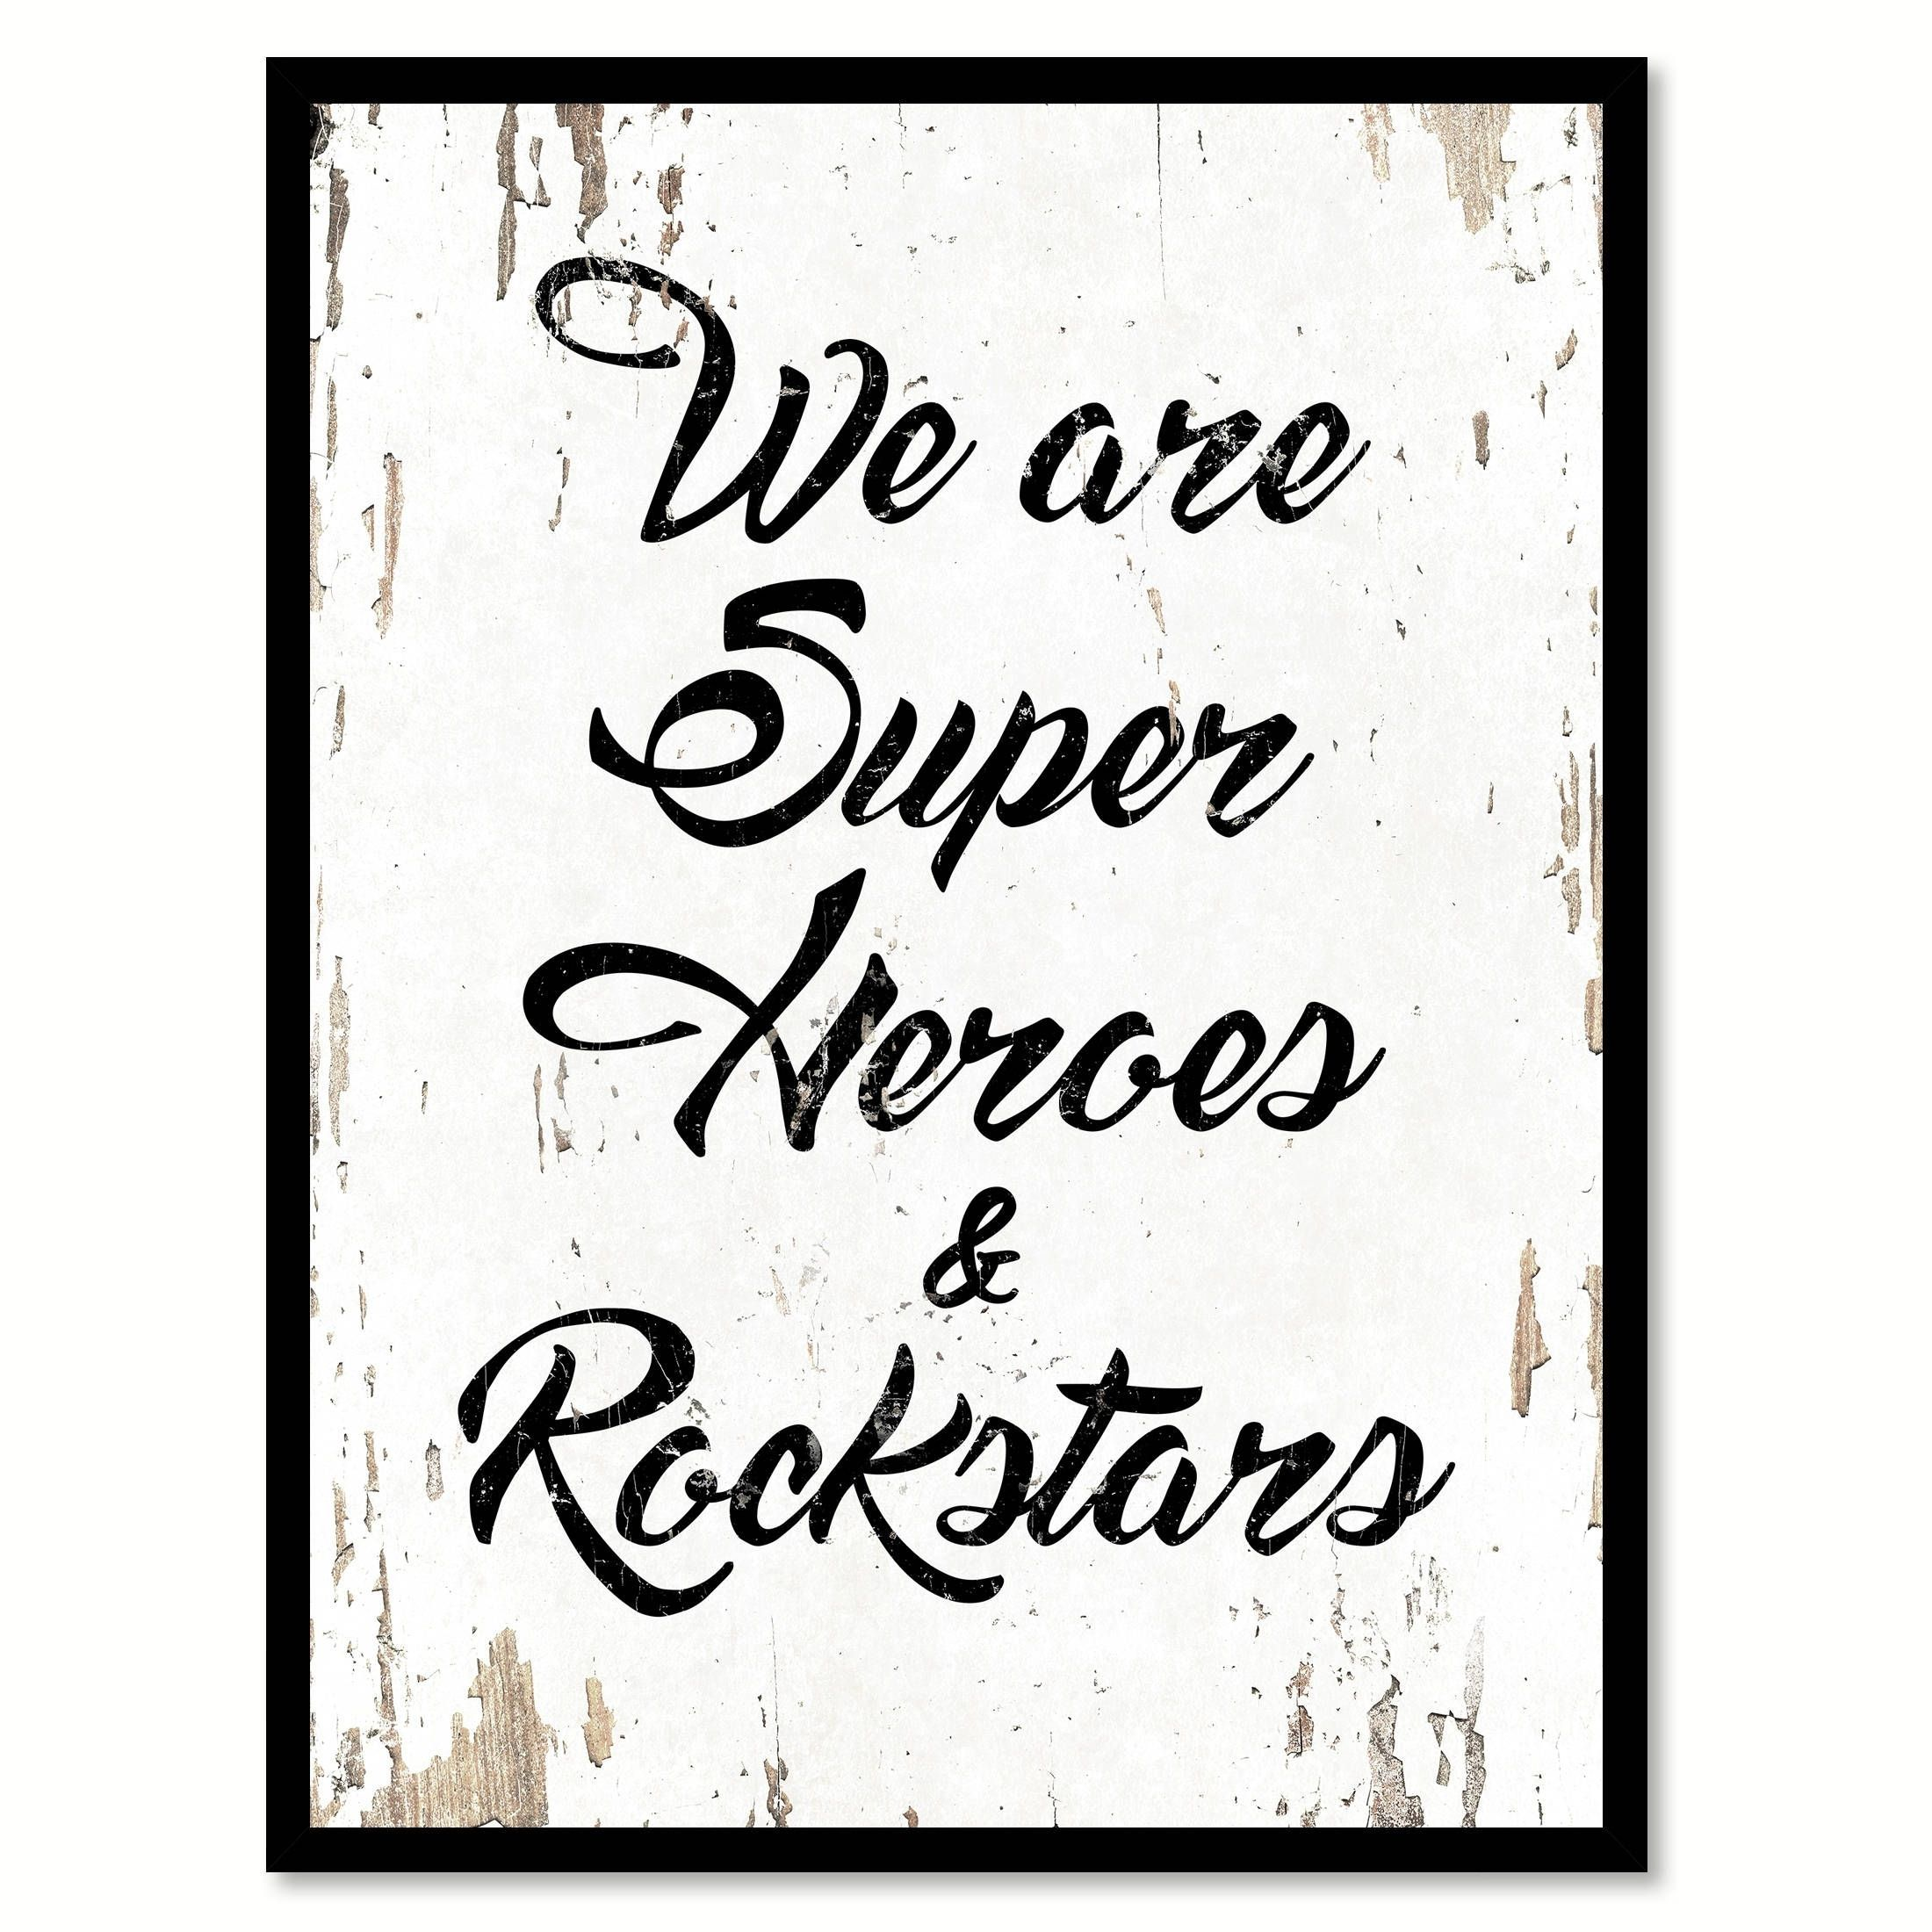 We Are Superheroes Rockstars Saying Canvas Print Picture Frame Home Decor Wall Art Wall Art Decor Home Decor Wall Art Wall Decor